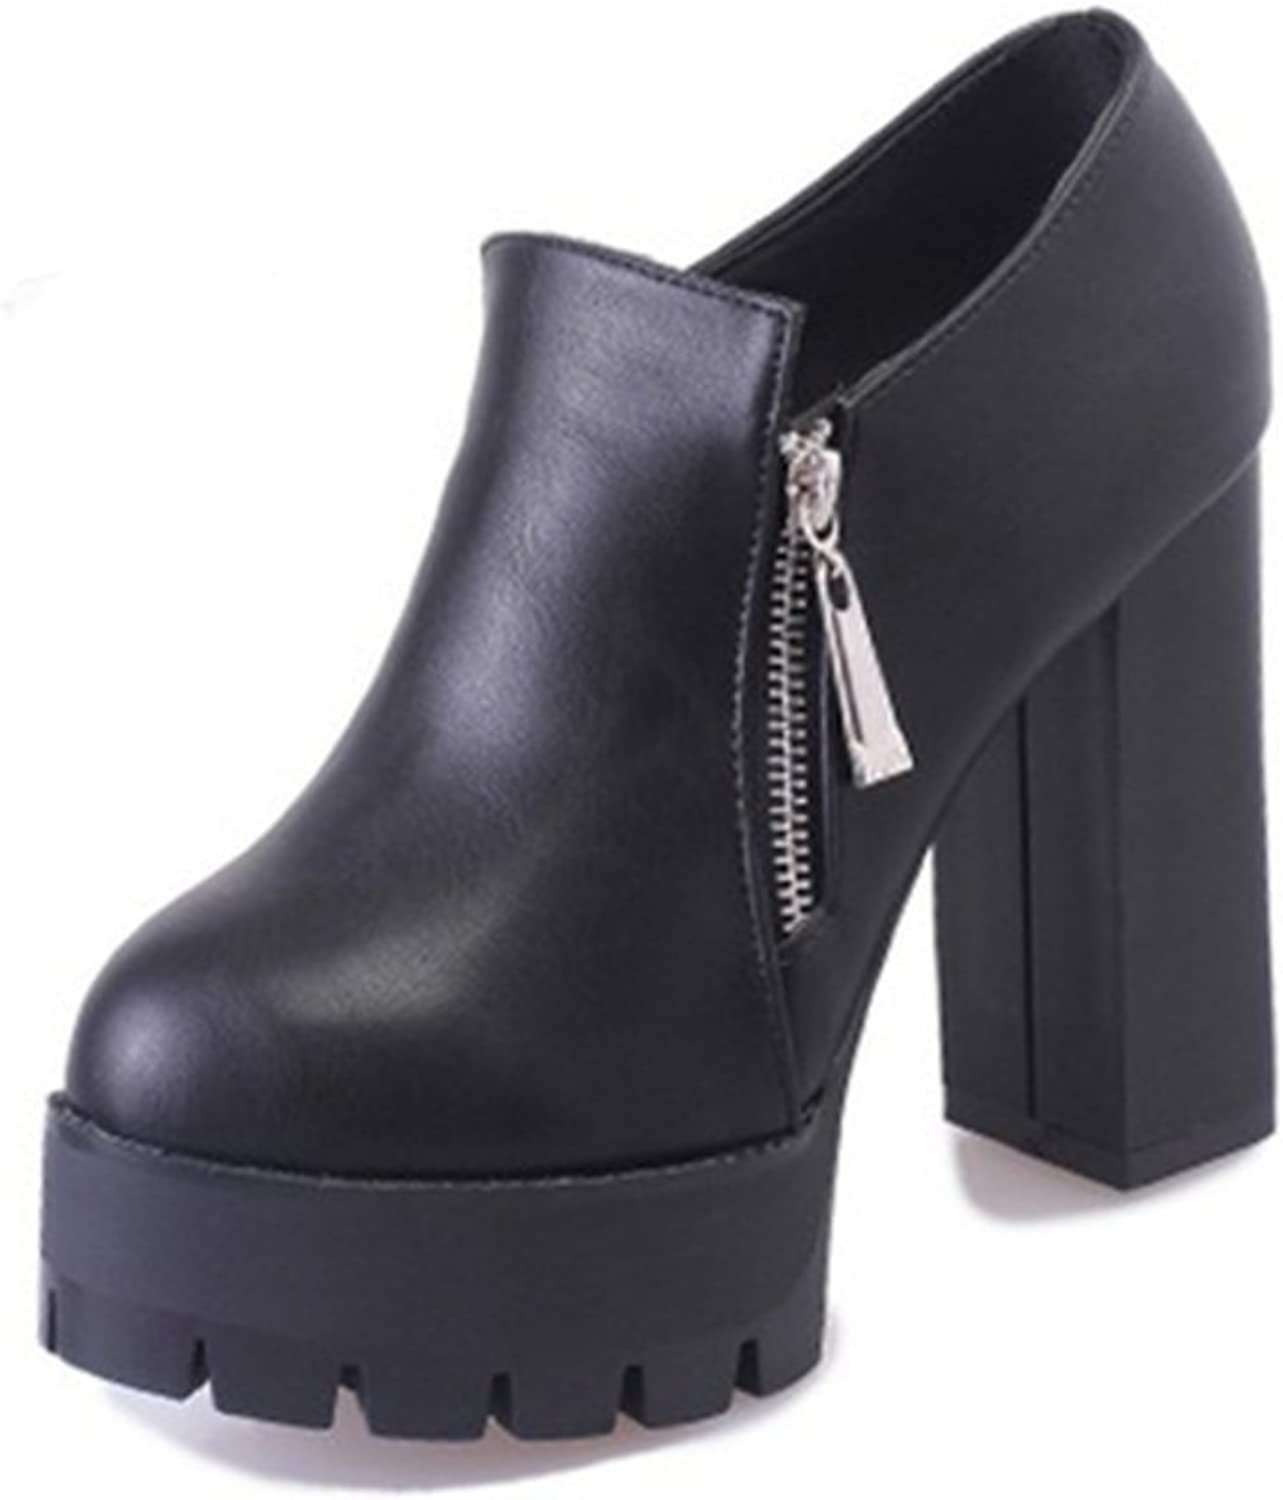 Europe in autumn and winter boots Thicken Martin boots High heel Side zipper waterproof platform boots with round head